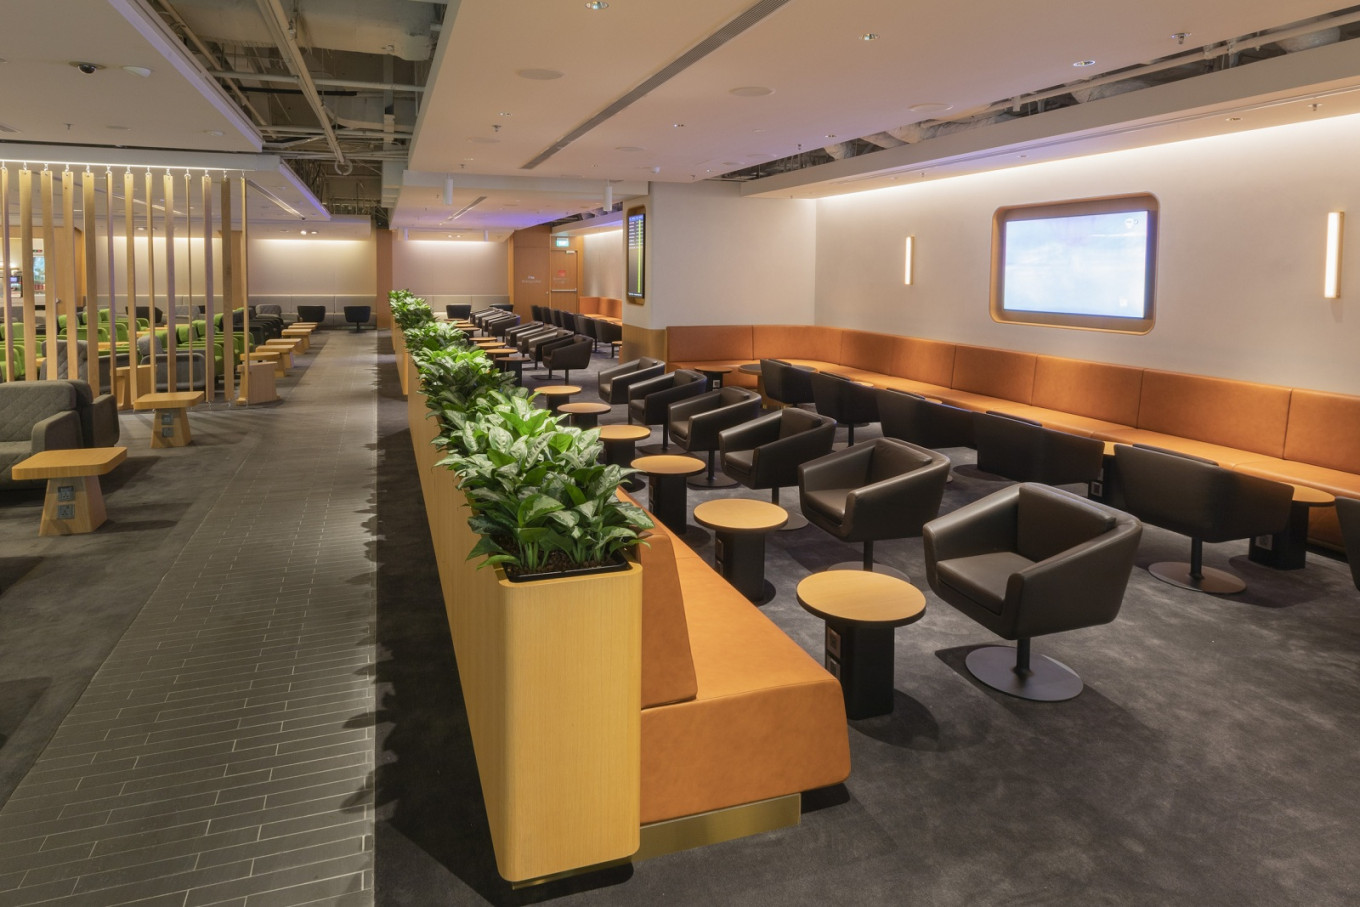 Qantas spoils Changi travelers with newly expanded business lounge